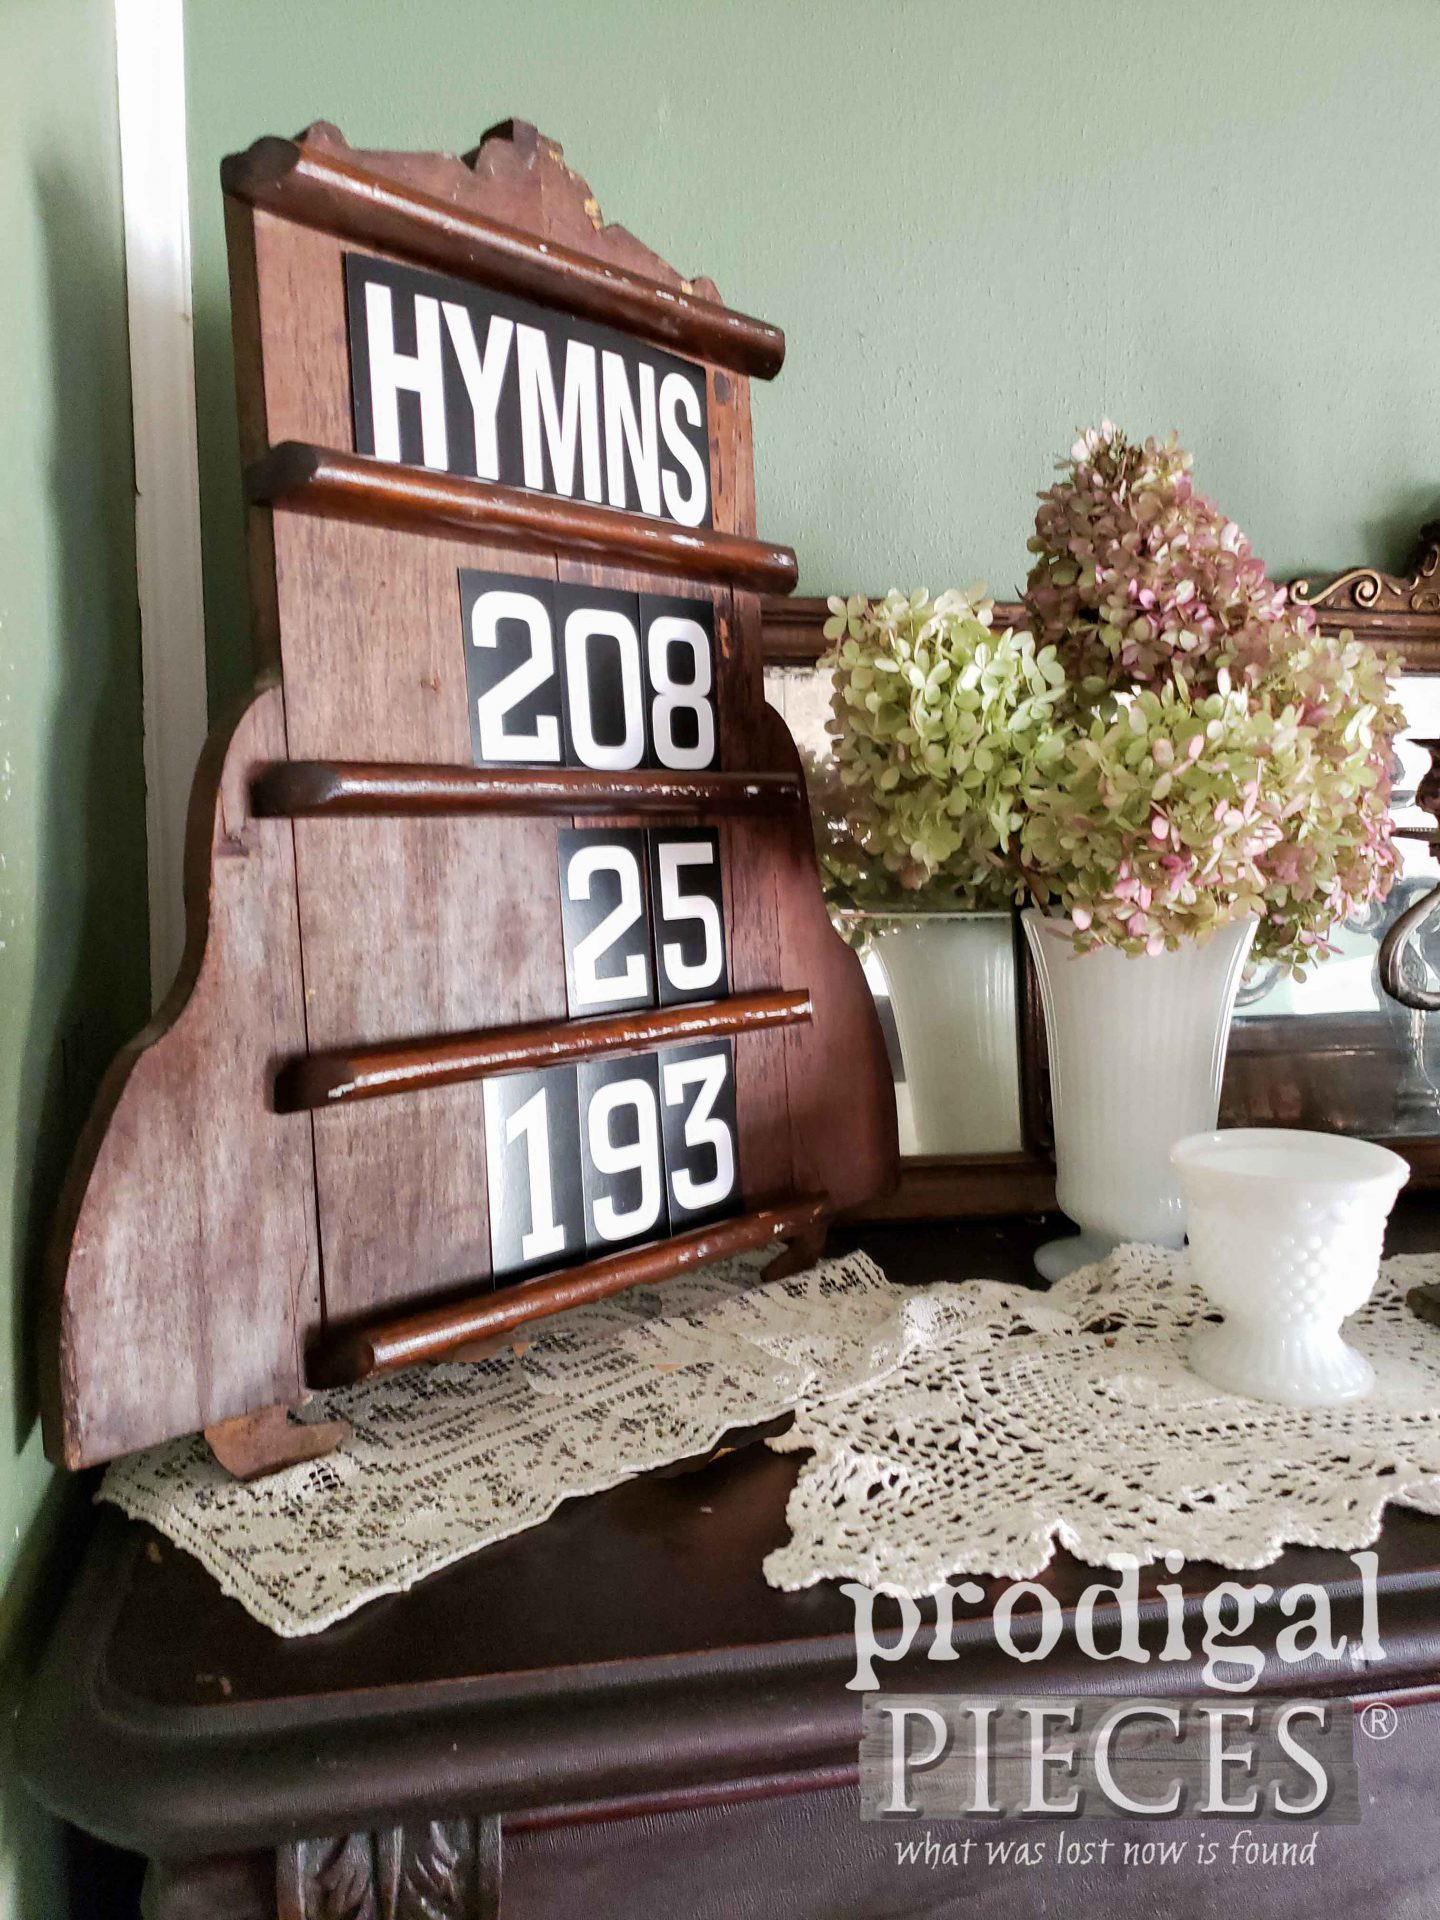 Reclaimed Wood Hymn Board made of salvaged parts by Larissa of Prodigal Pieces | prodigalpieces.com #prodigalpieces #reclaimed #farmhouse #home #homedecor